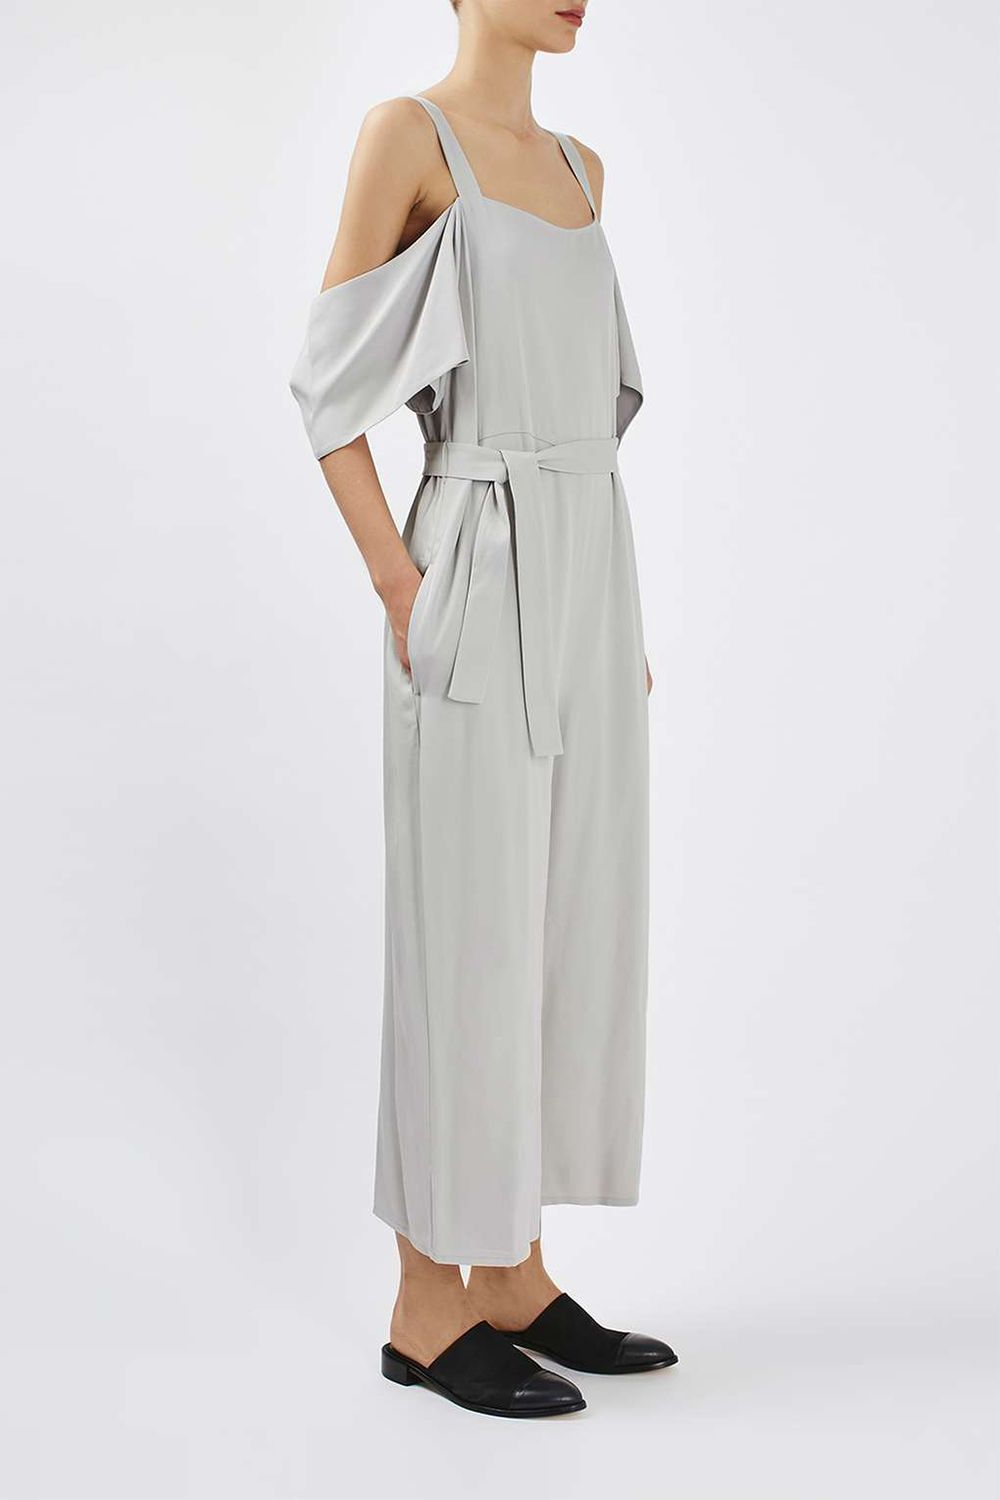 """<p>For those artsy casual-cool offices where anything goes. Or, layered with a sweater for more conservative spaces. </p><p><strong>Off-the-Shoulder Jumpsuit by Boutique, $150; <a href=""""http://us.topshop.com/en/tsus/product/clothing-70483/rompers-jumpsuits-4107634/off-the-shoulder-jumpsuit-by-boutique-5740558?bi=20&ps=20"""" target=""""_blank"""">topshop.com</a>. </strong></p>"""